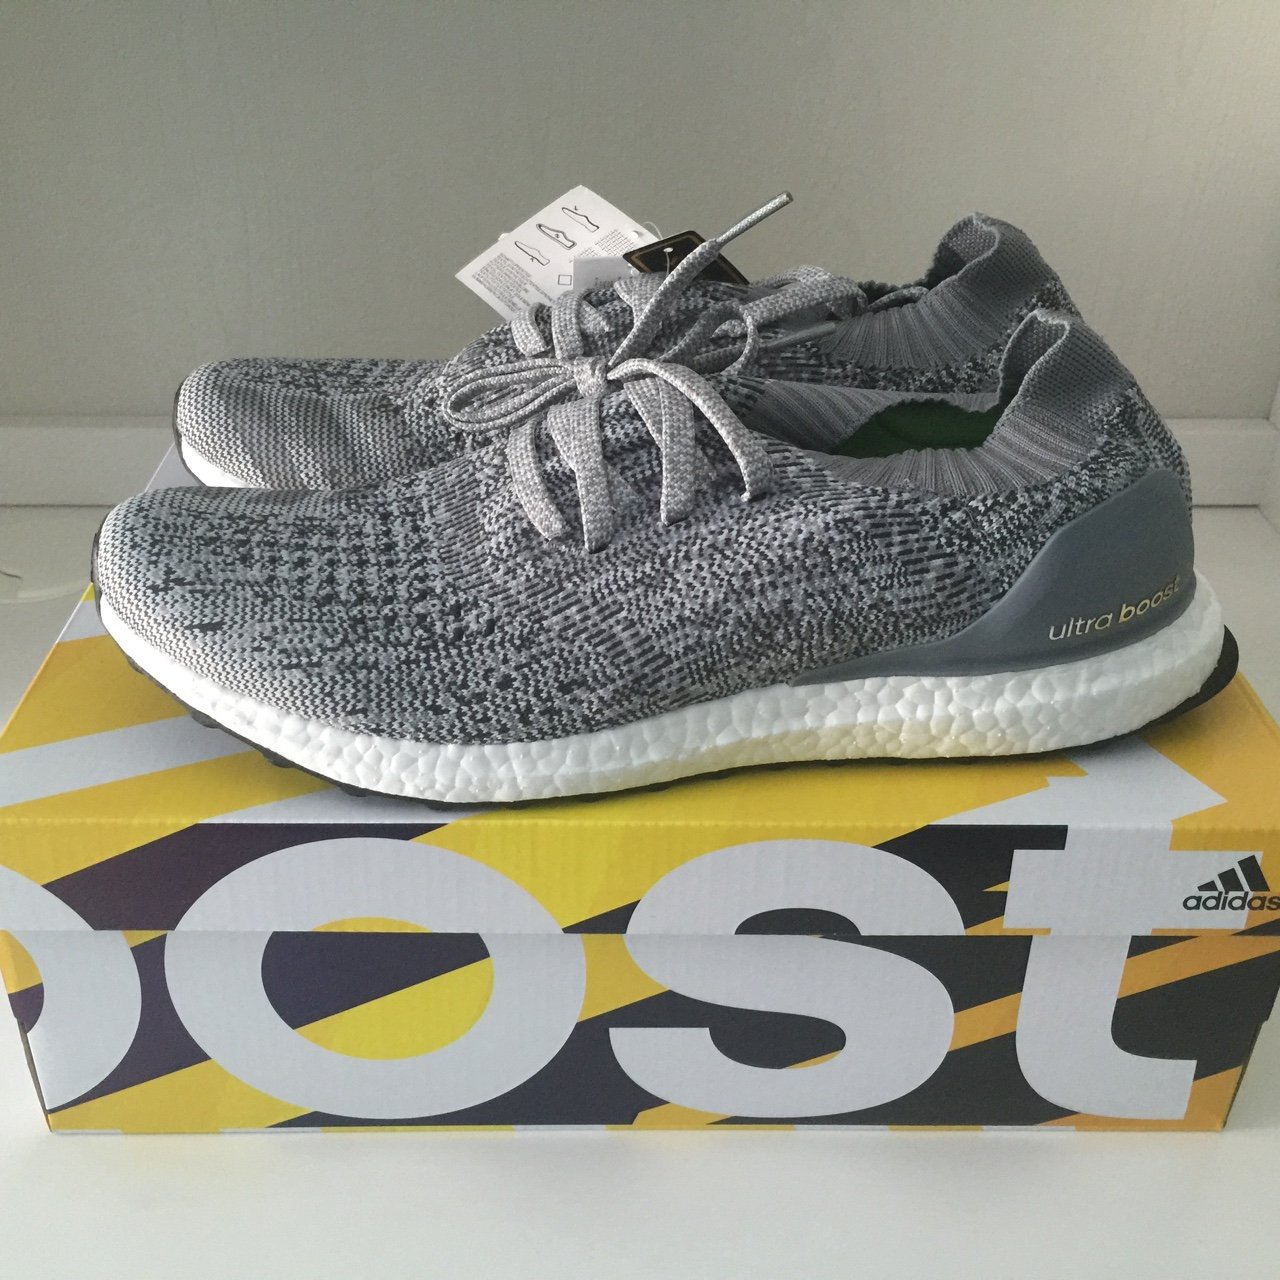 d245f8de0 Adidas Ultra Boost Uncaged - UK 11.5 These would fit a size - Depop